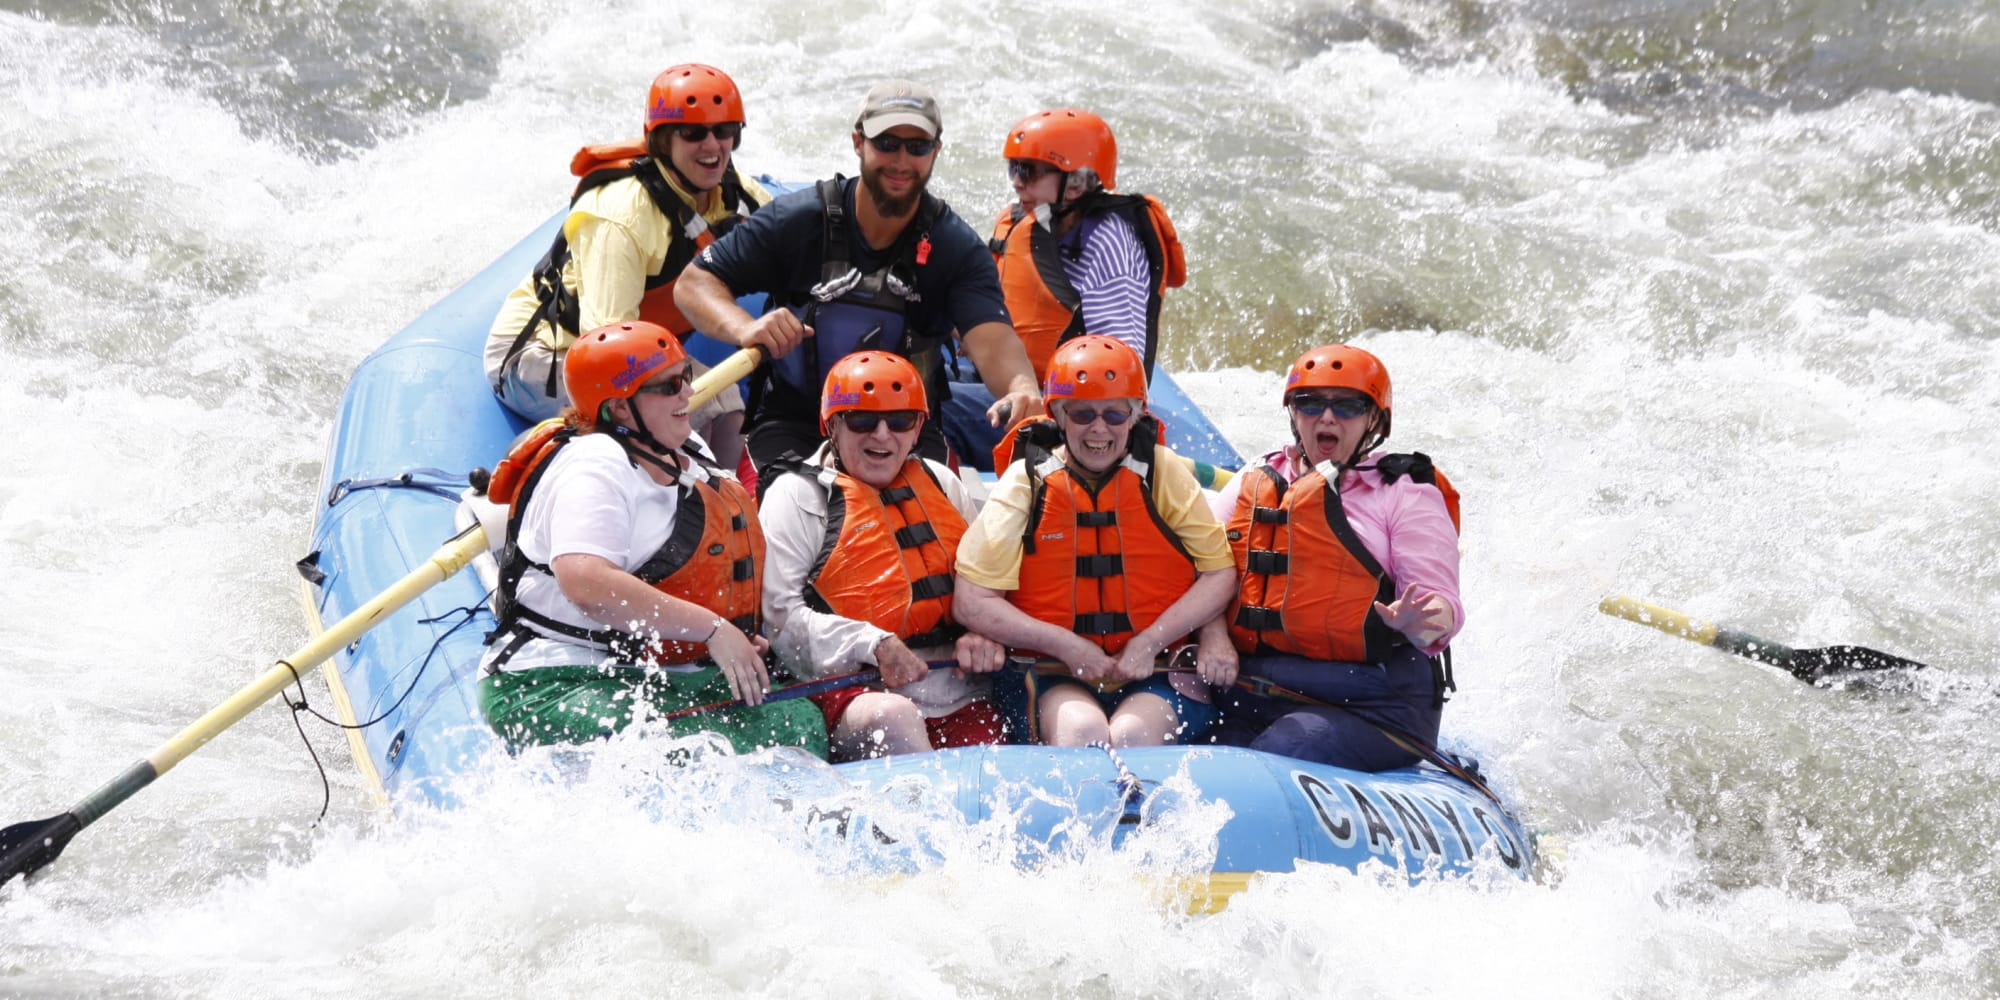 Residents from Summit Glen in Colorado Springs, Colorado white water rafting